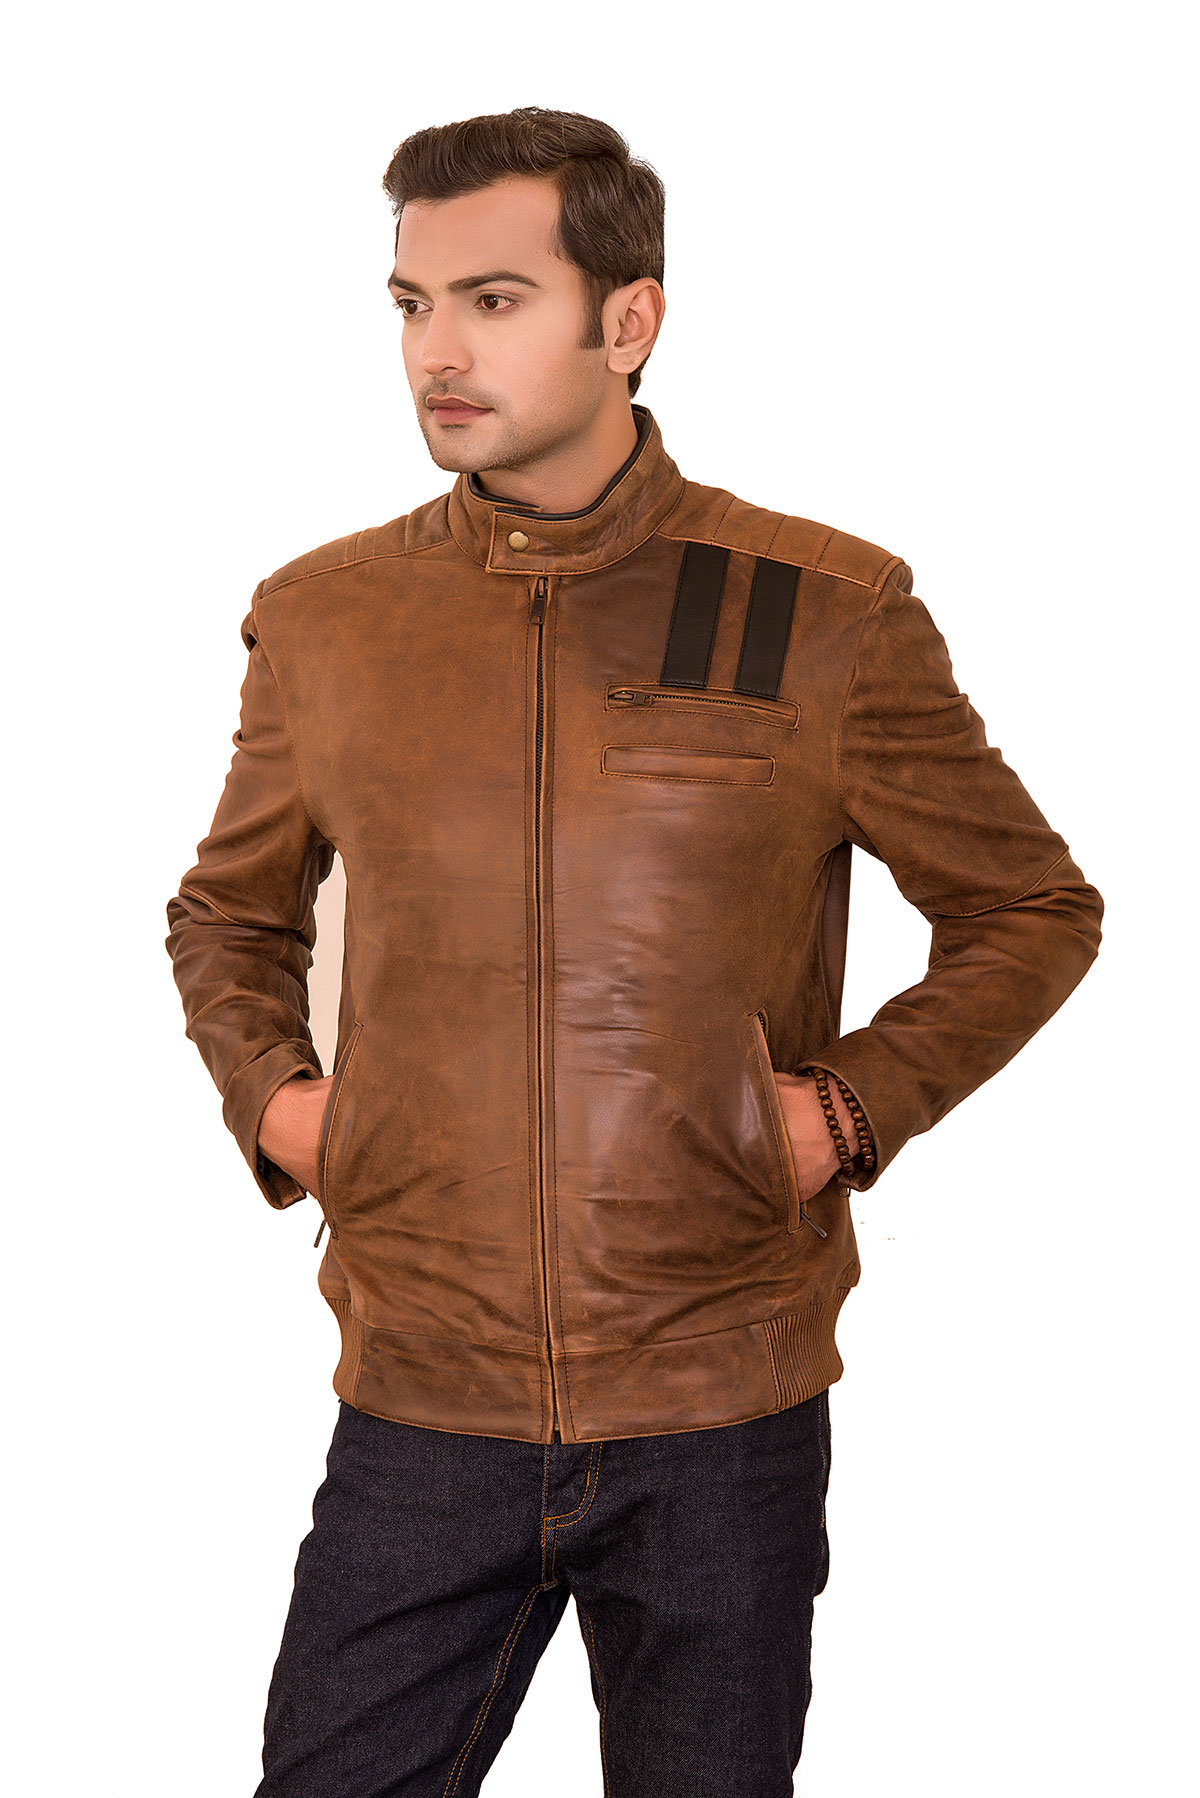 mens leather jacket outfit ideas